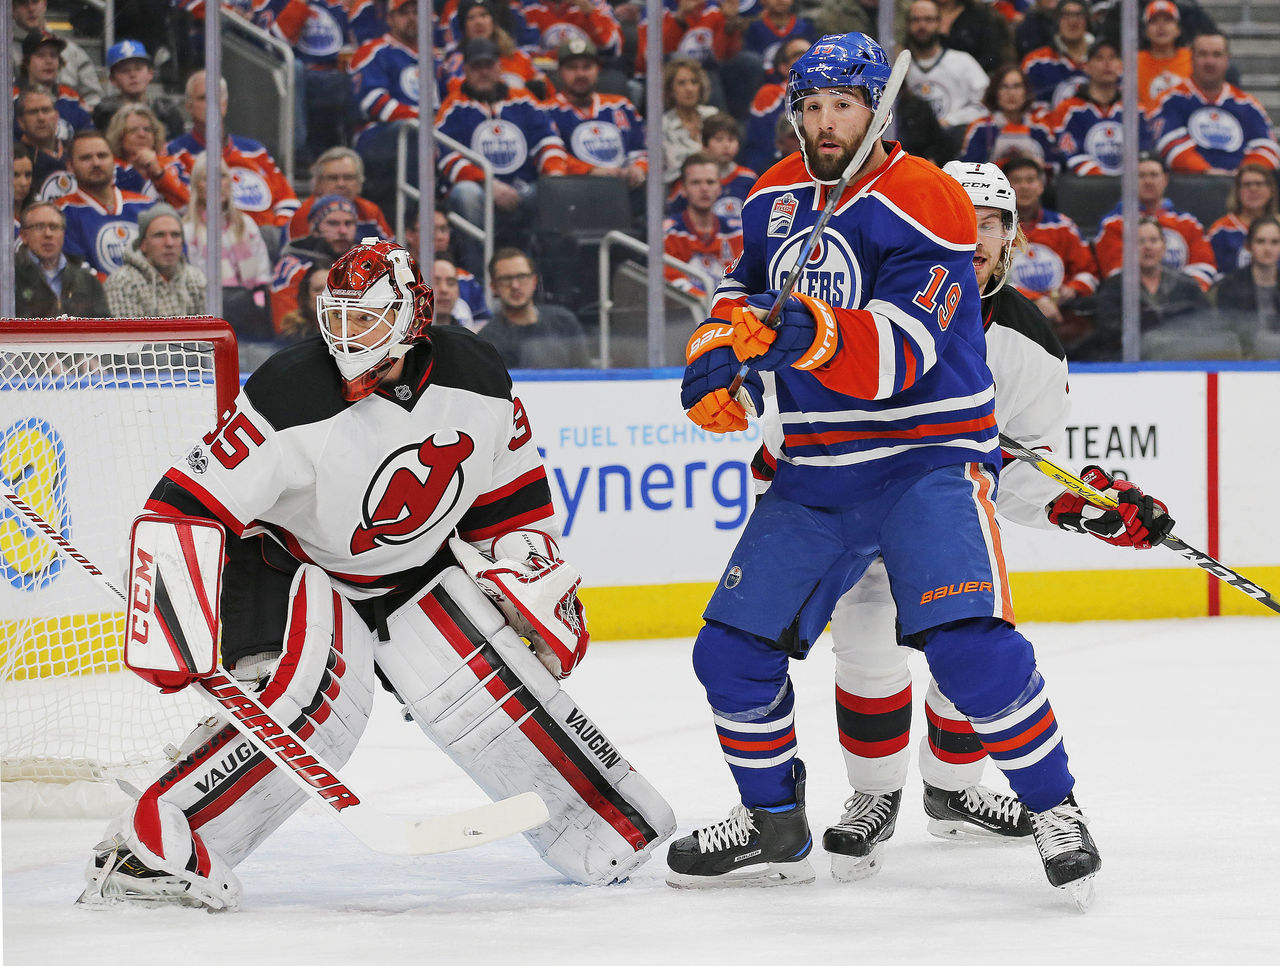 Cropped 2017 01 13t030843z 2072563734 nocid rtrmadp 3 nhl new jersey devils at edmonton oilers